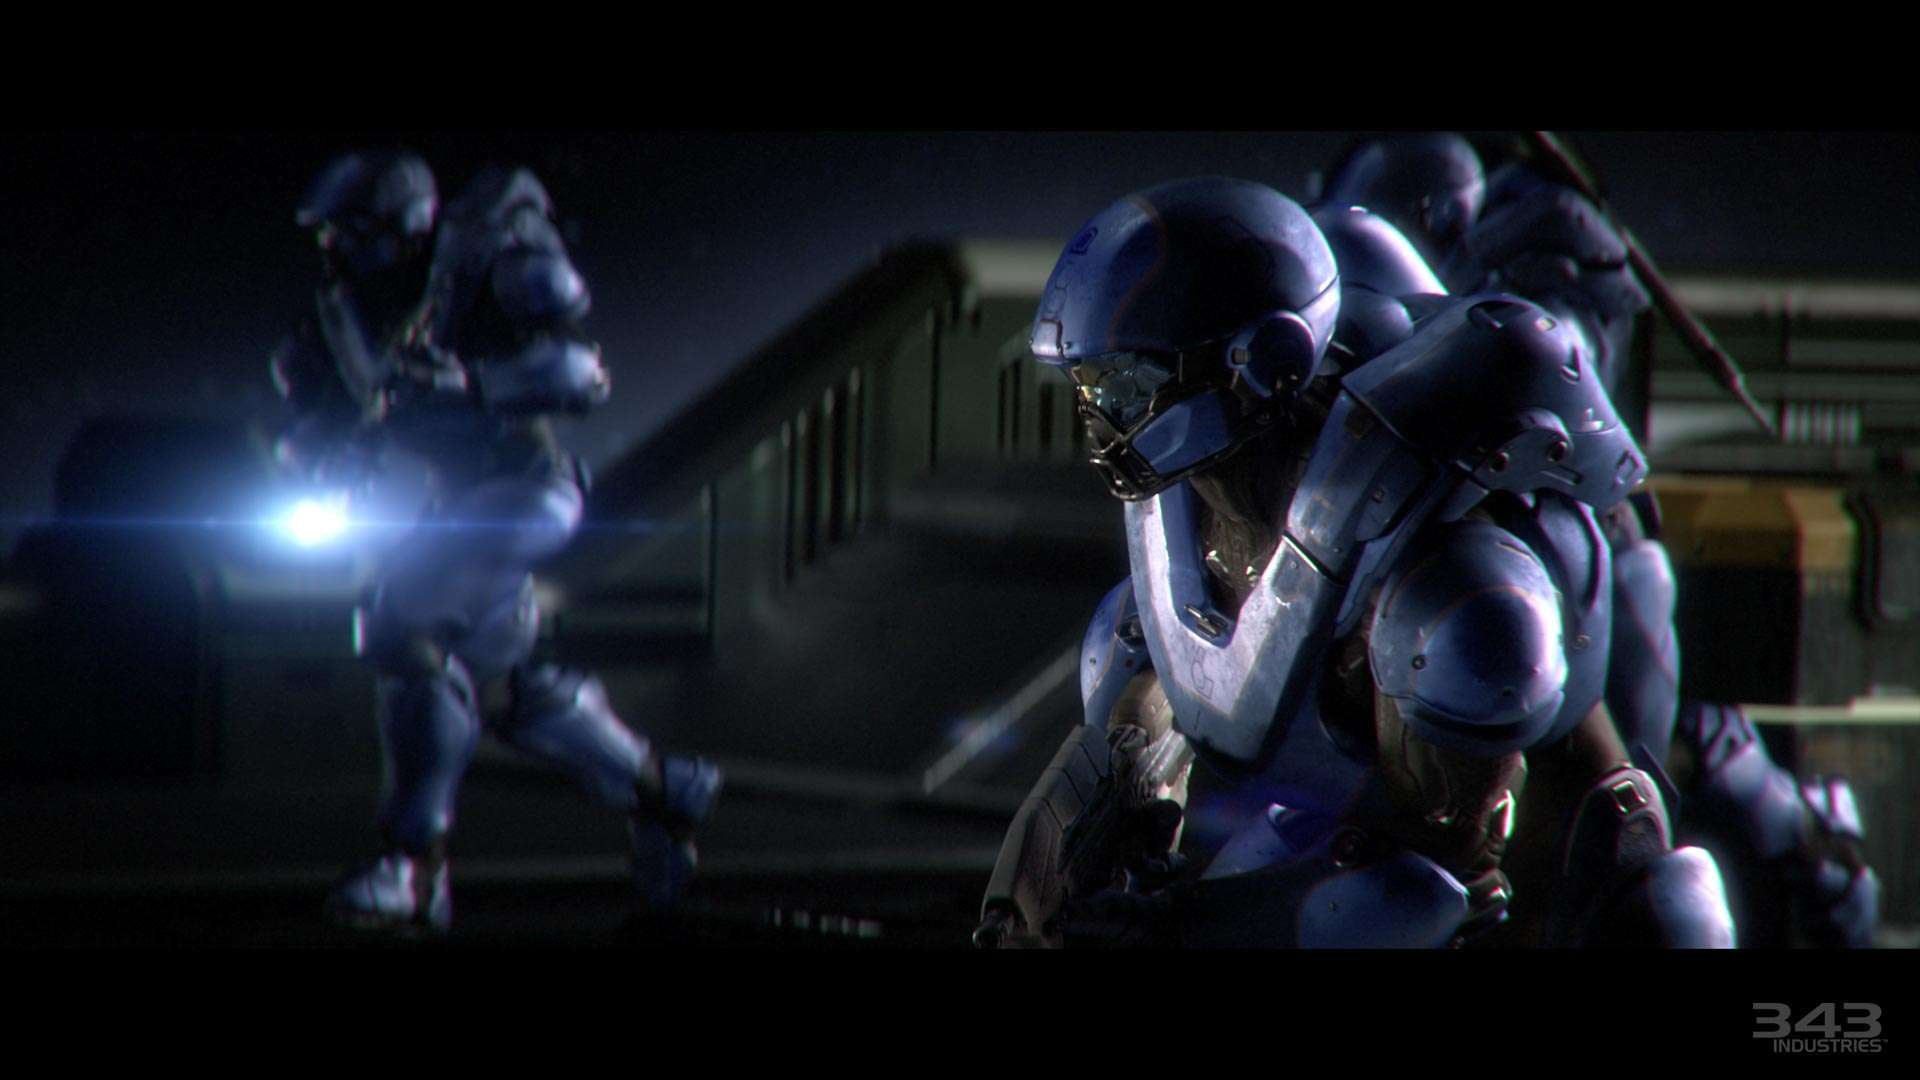 Wallpaper Halo 5 Guardians 02 HD Wallpaper Upload at October 2 2014 1920x1080